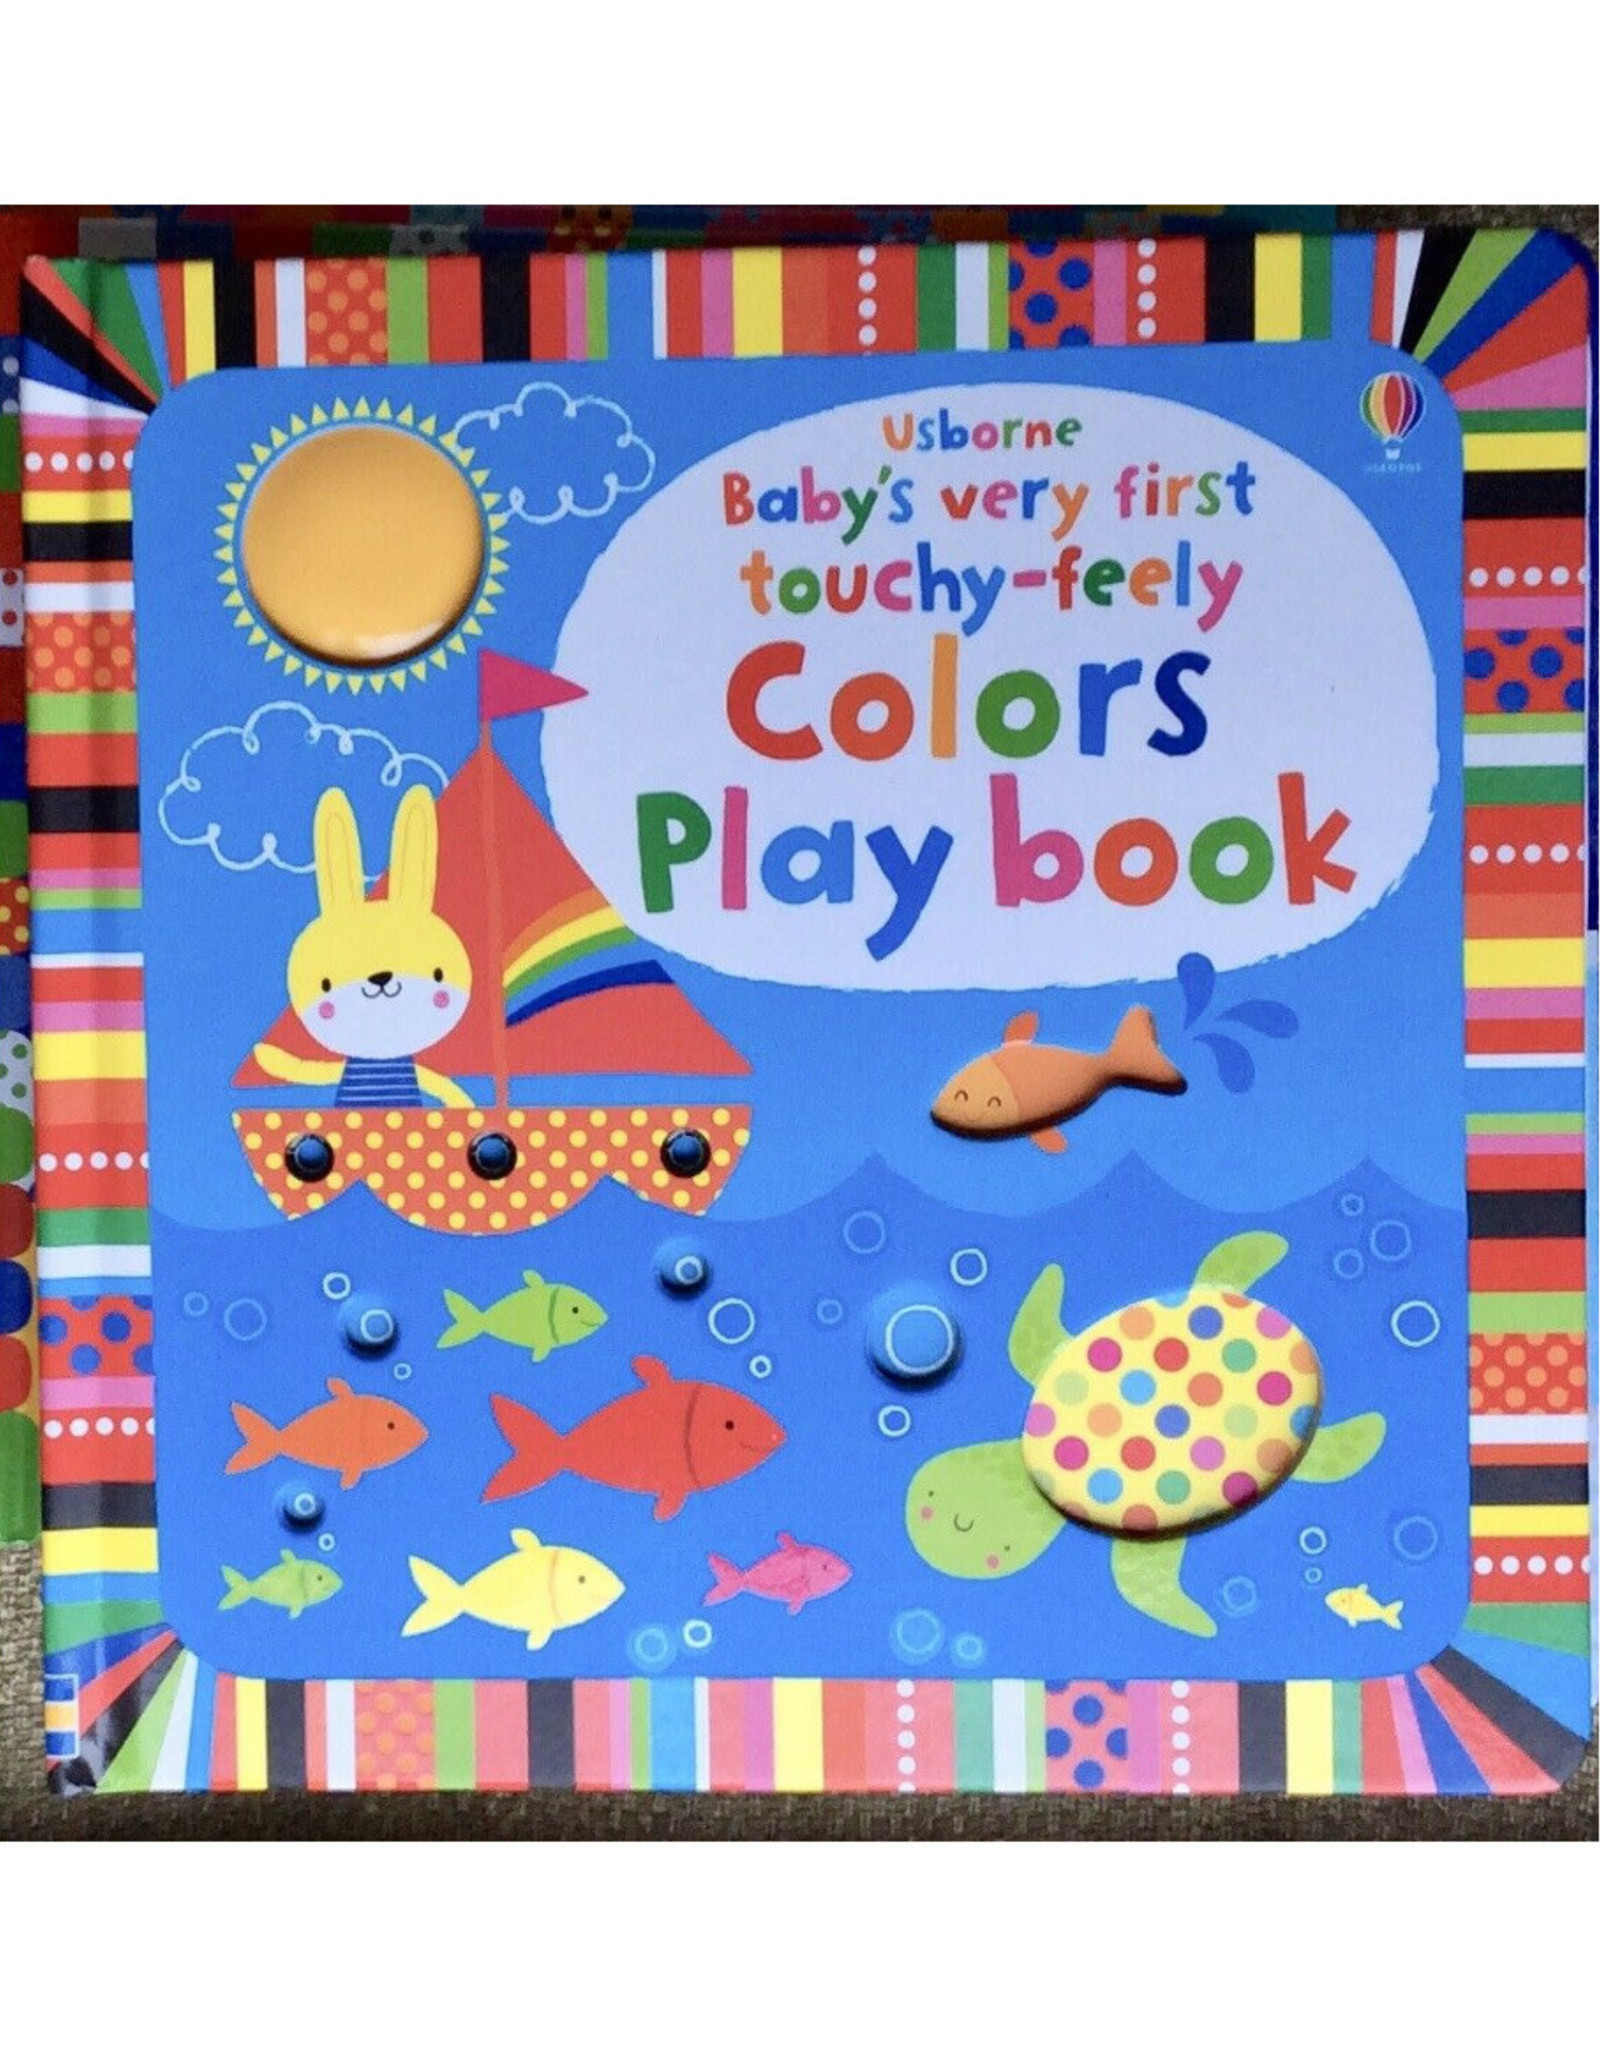 Usborne Touchy-Feely Colors Playbook - Baby's Very First